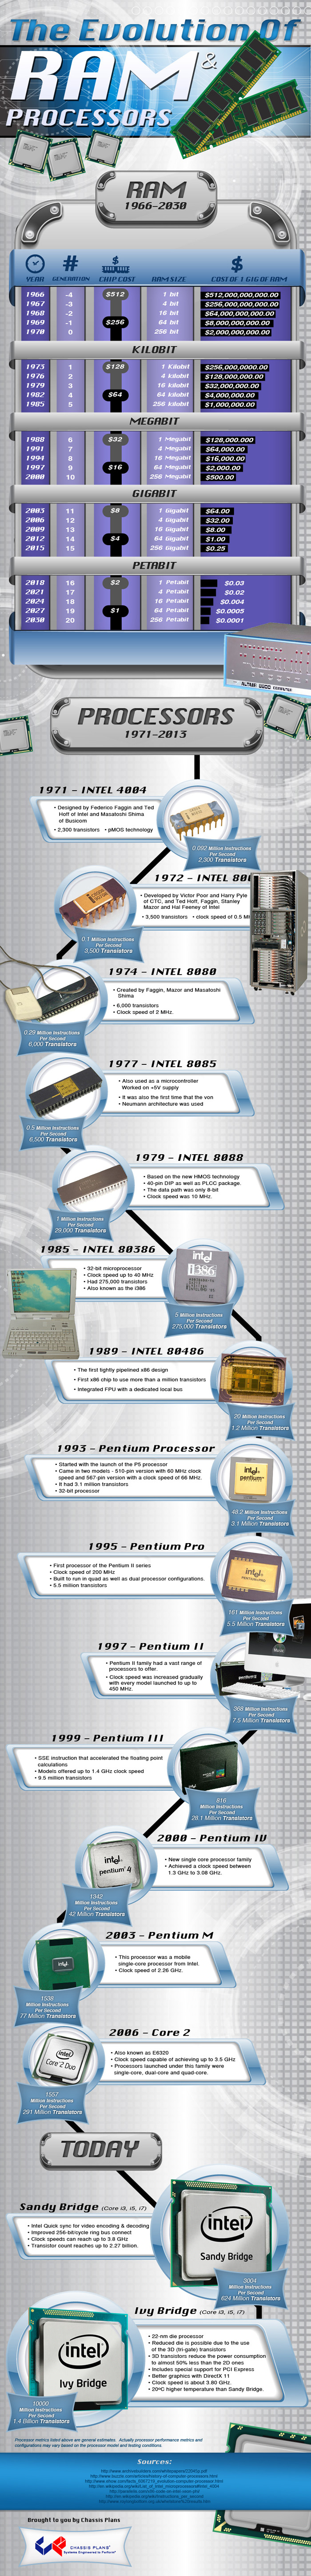 the-evolution-of-ram-and-processors